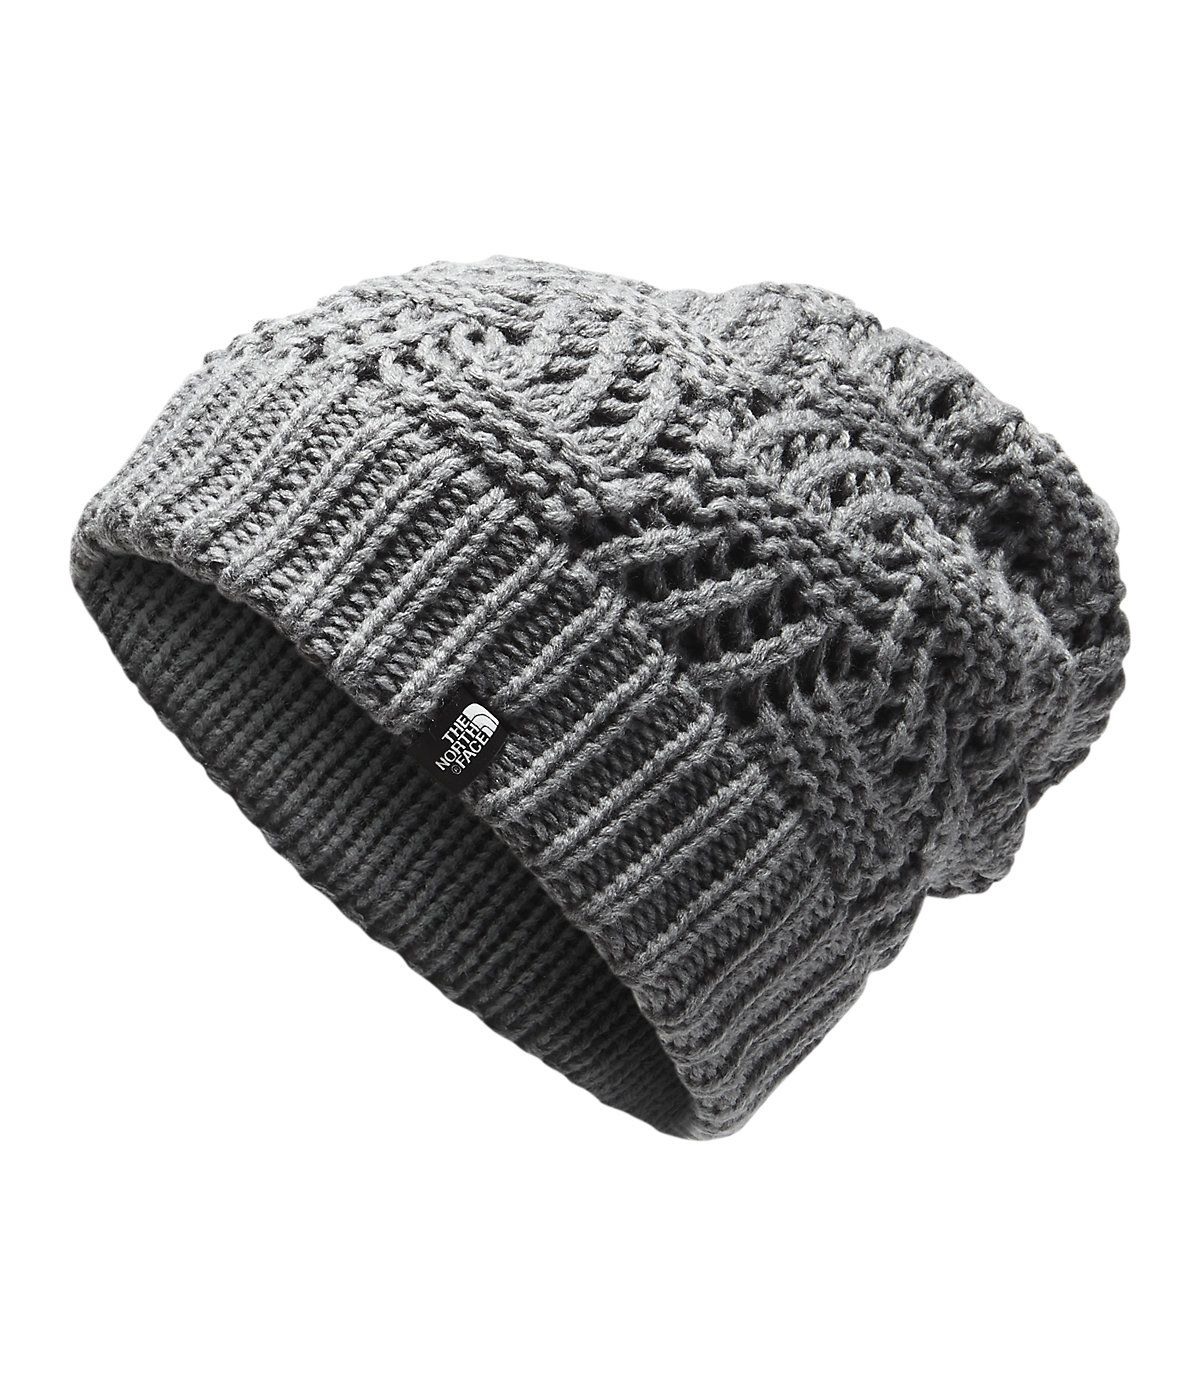 e9f4ec21c The North Face Men's Shinsky Beanie Hat in 2019 | Products | Beanie ...